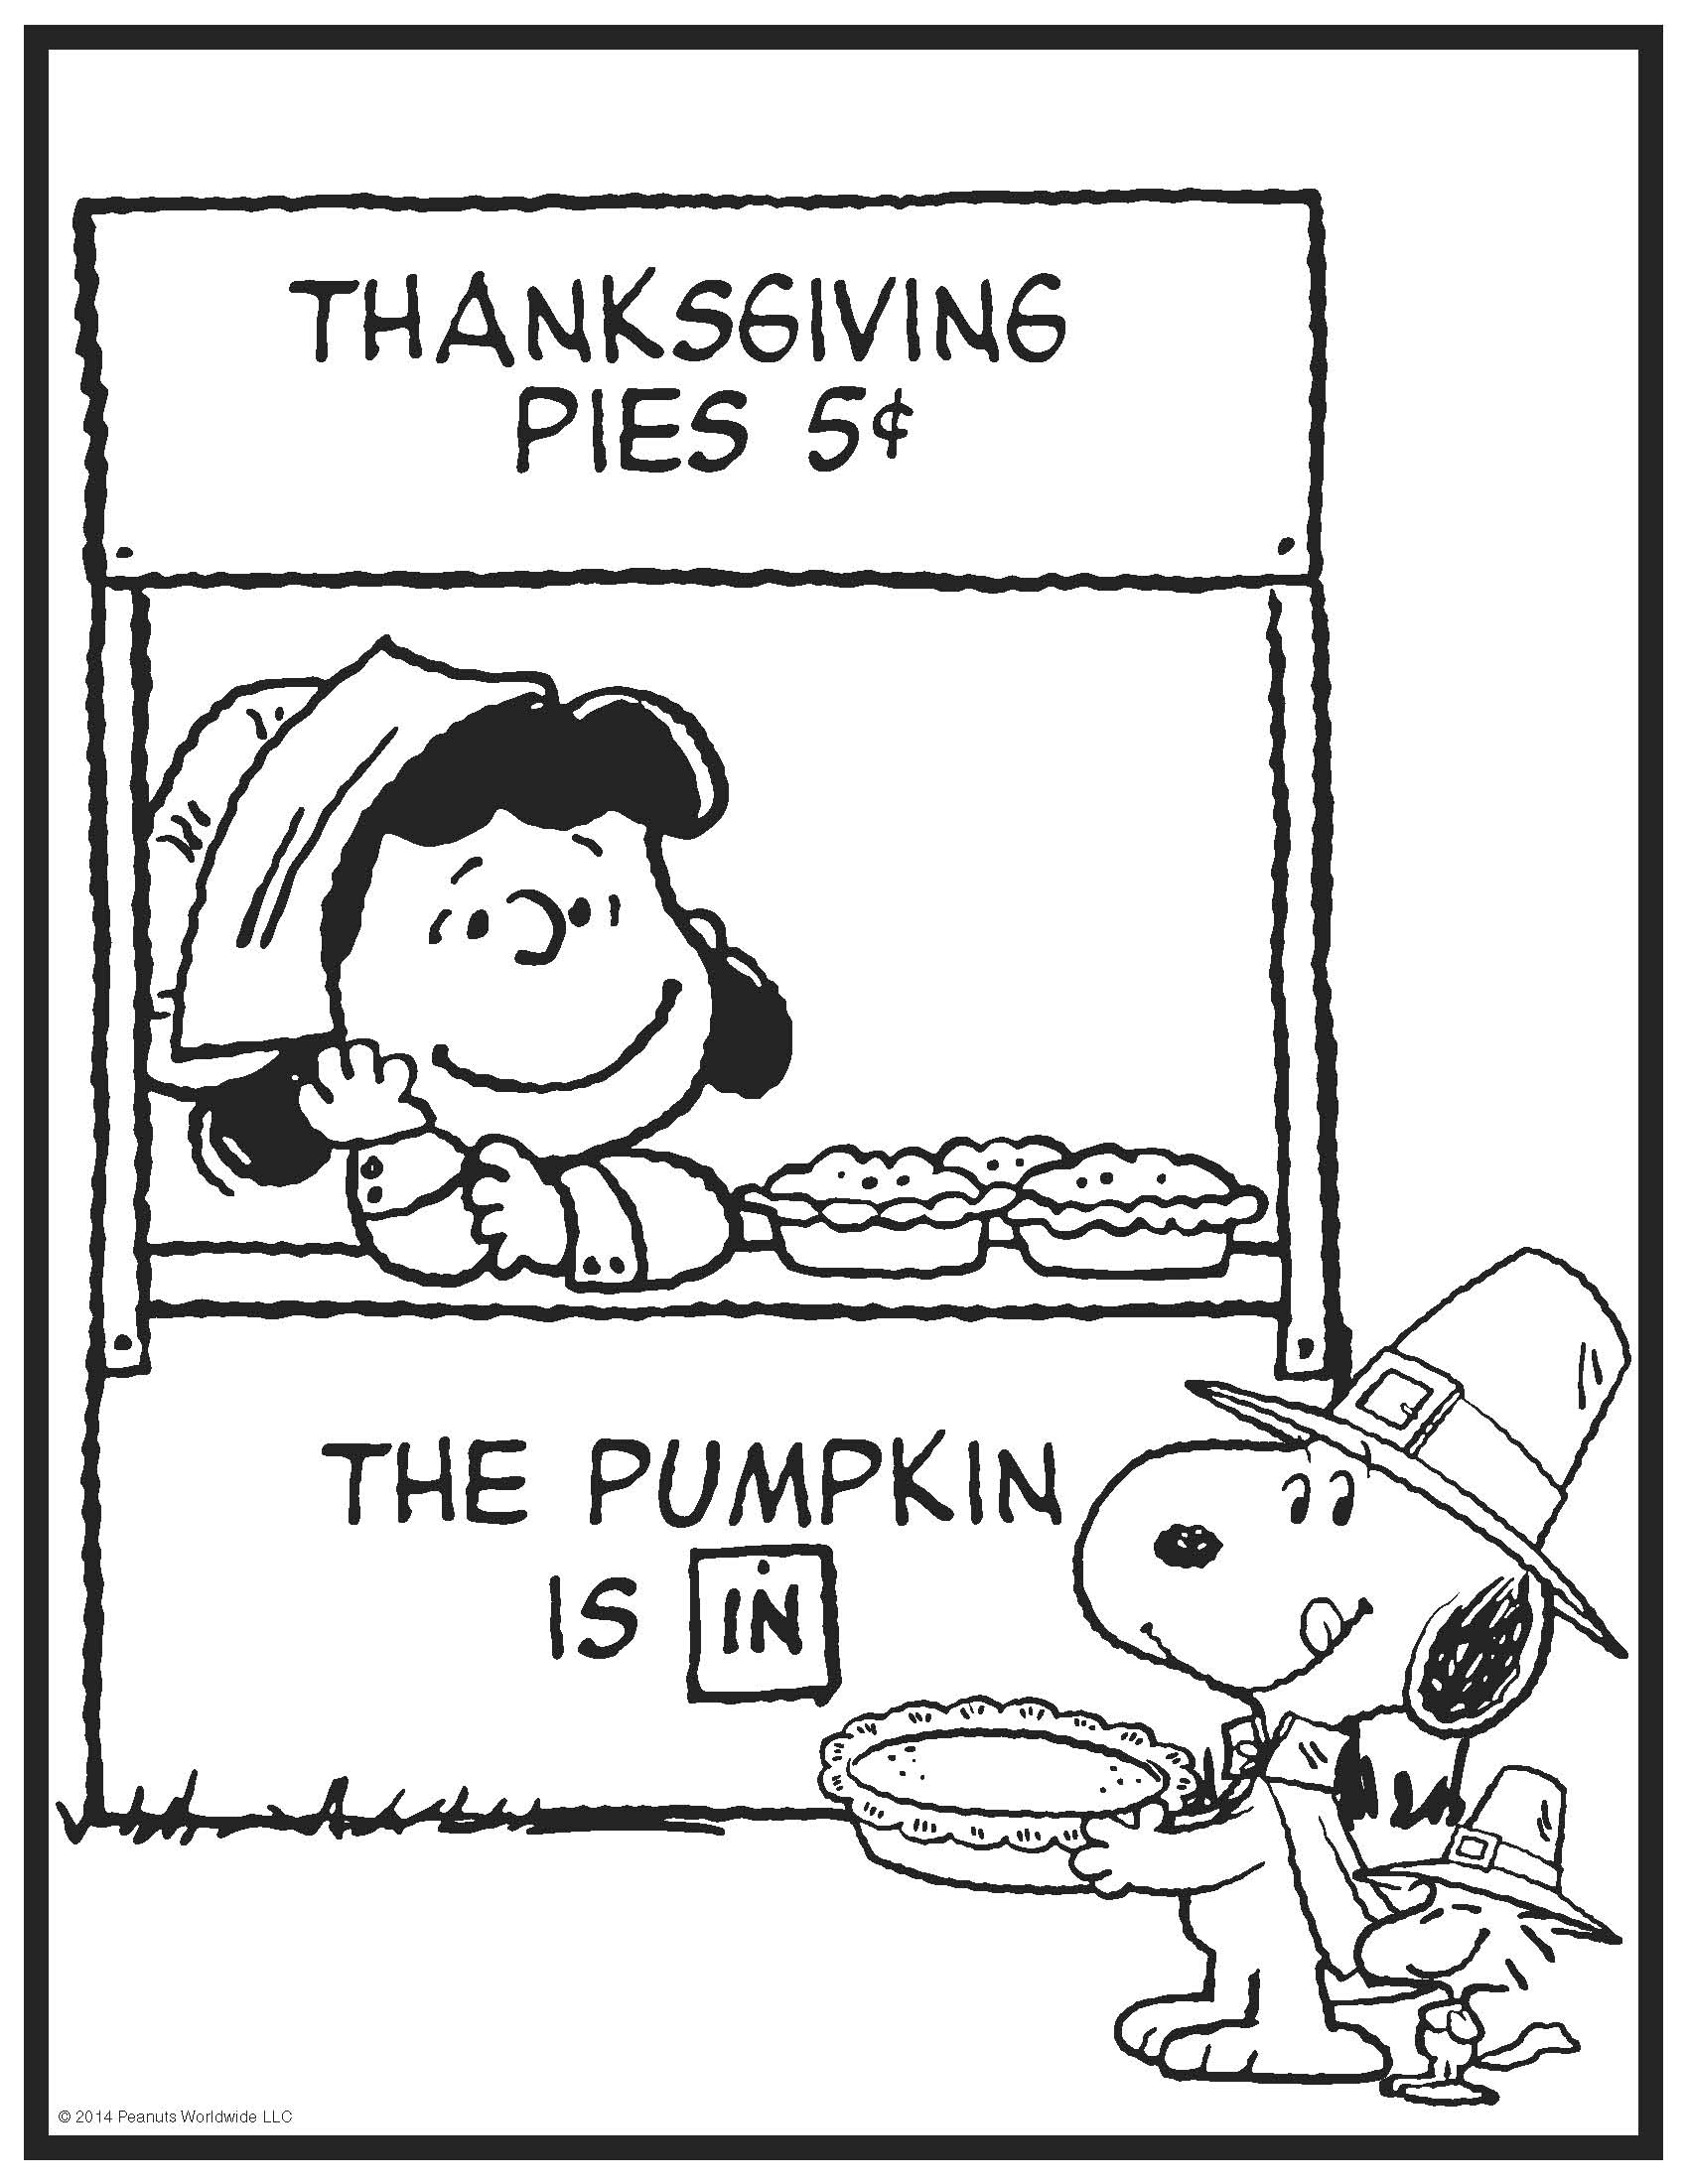 Peanuts Characters Thanksgiving Coloring Pages - Coloring Home